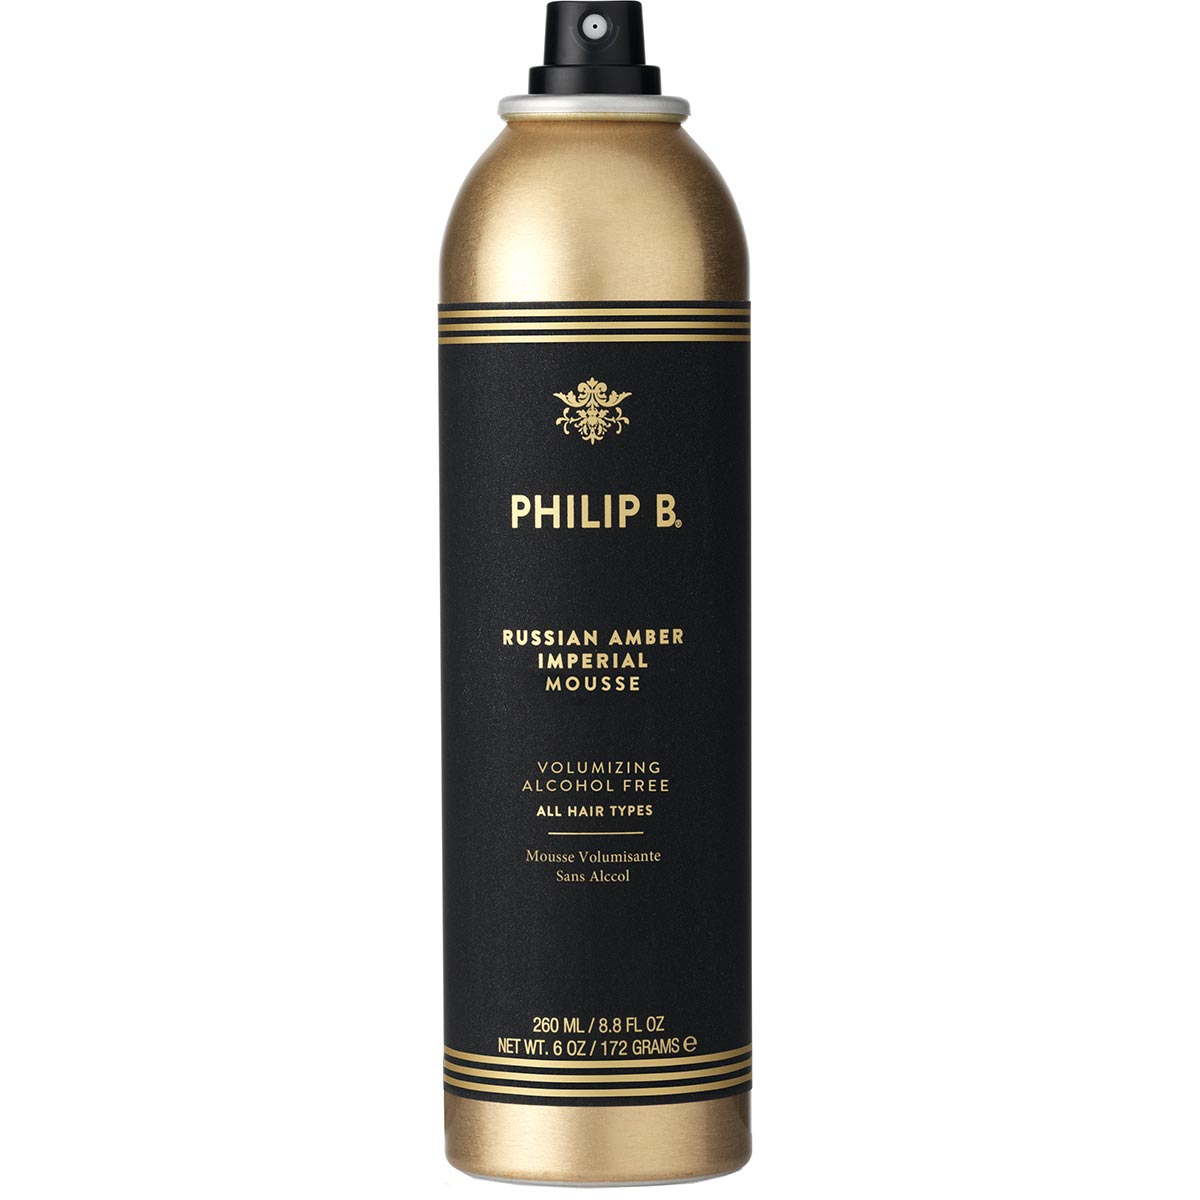 Russian Amber Imperial Dry Shampoo 260 ml Philip B Torrschampo